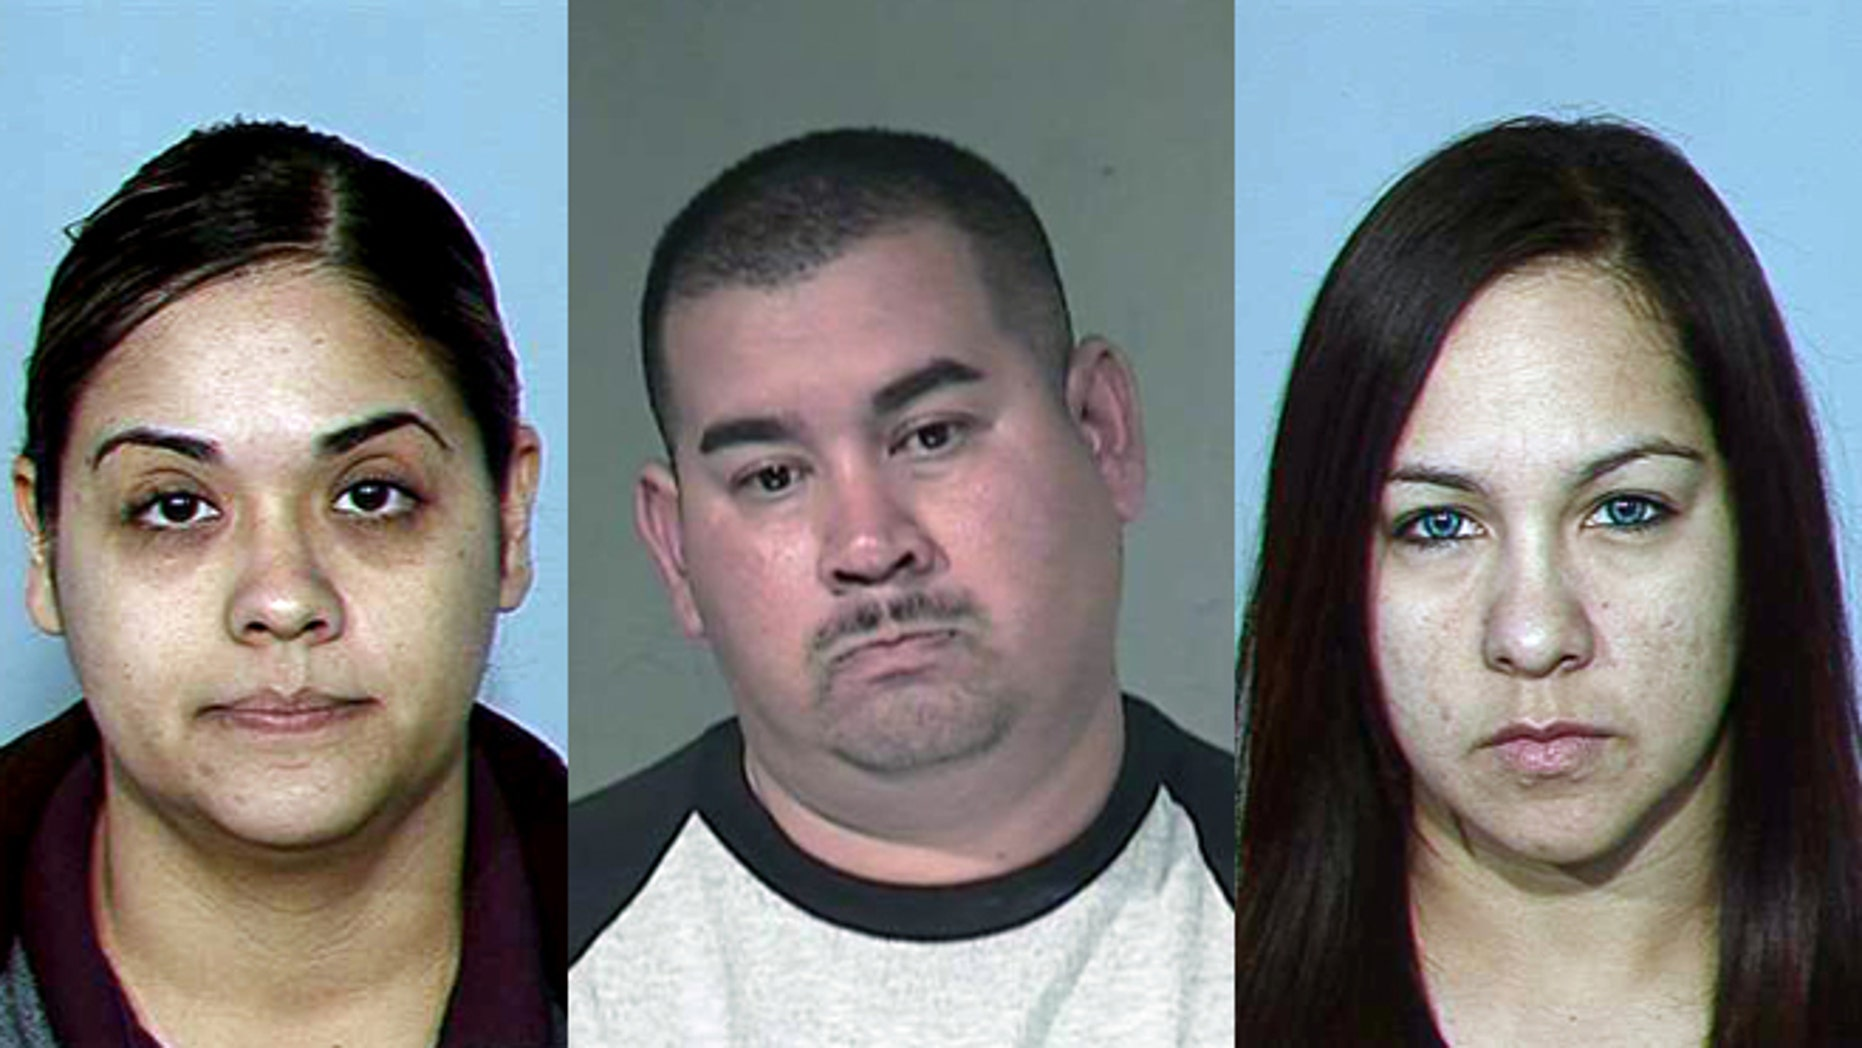 Prosecutors have asked charges to be dismissed against Sylvia Rios Najera (left), Alfredo Aguirre Navarrette and  Marcella Marie Hernandez. (Photos: AP/Maricopa County Sheriff)